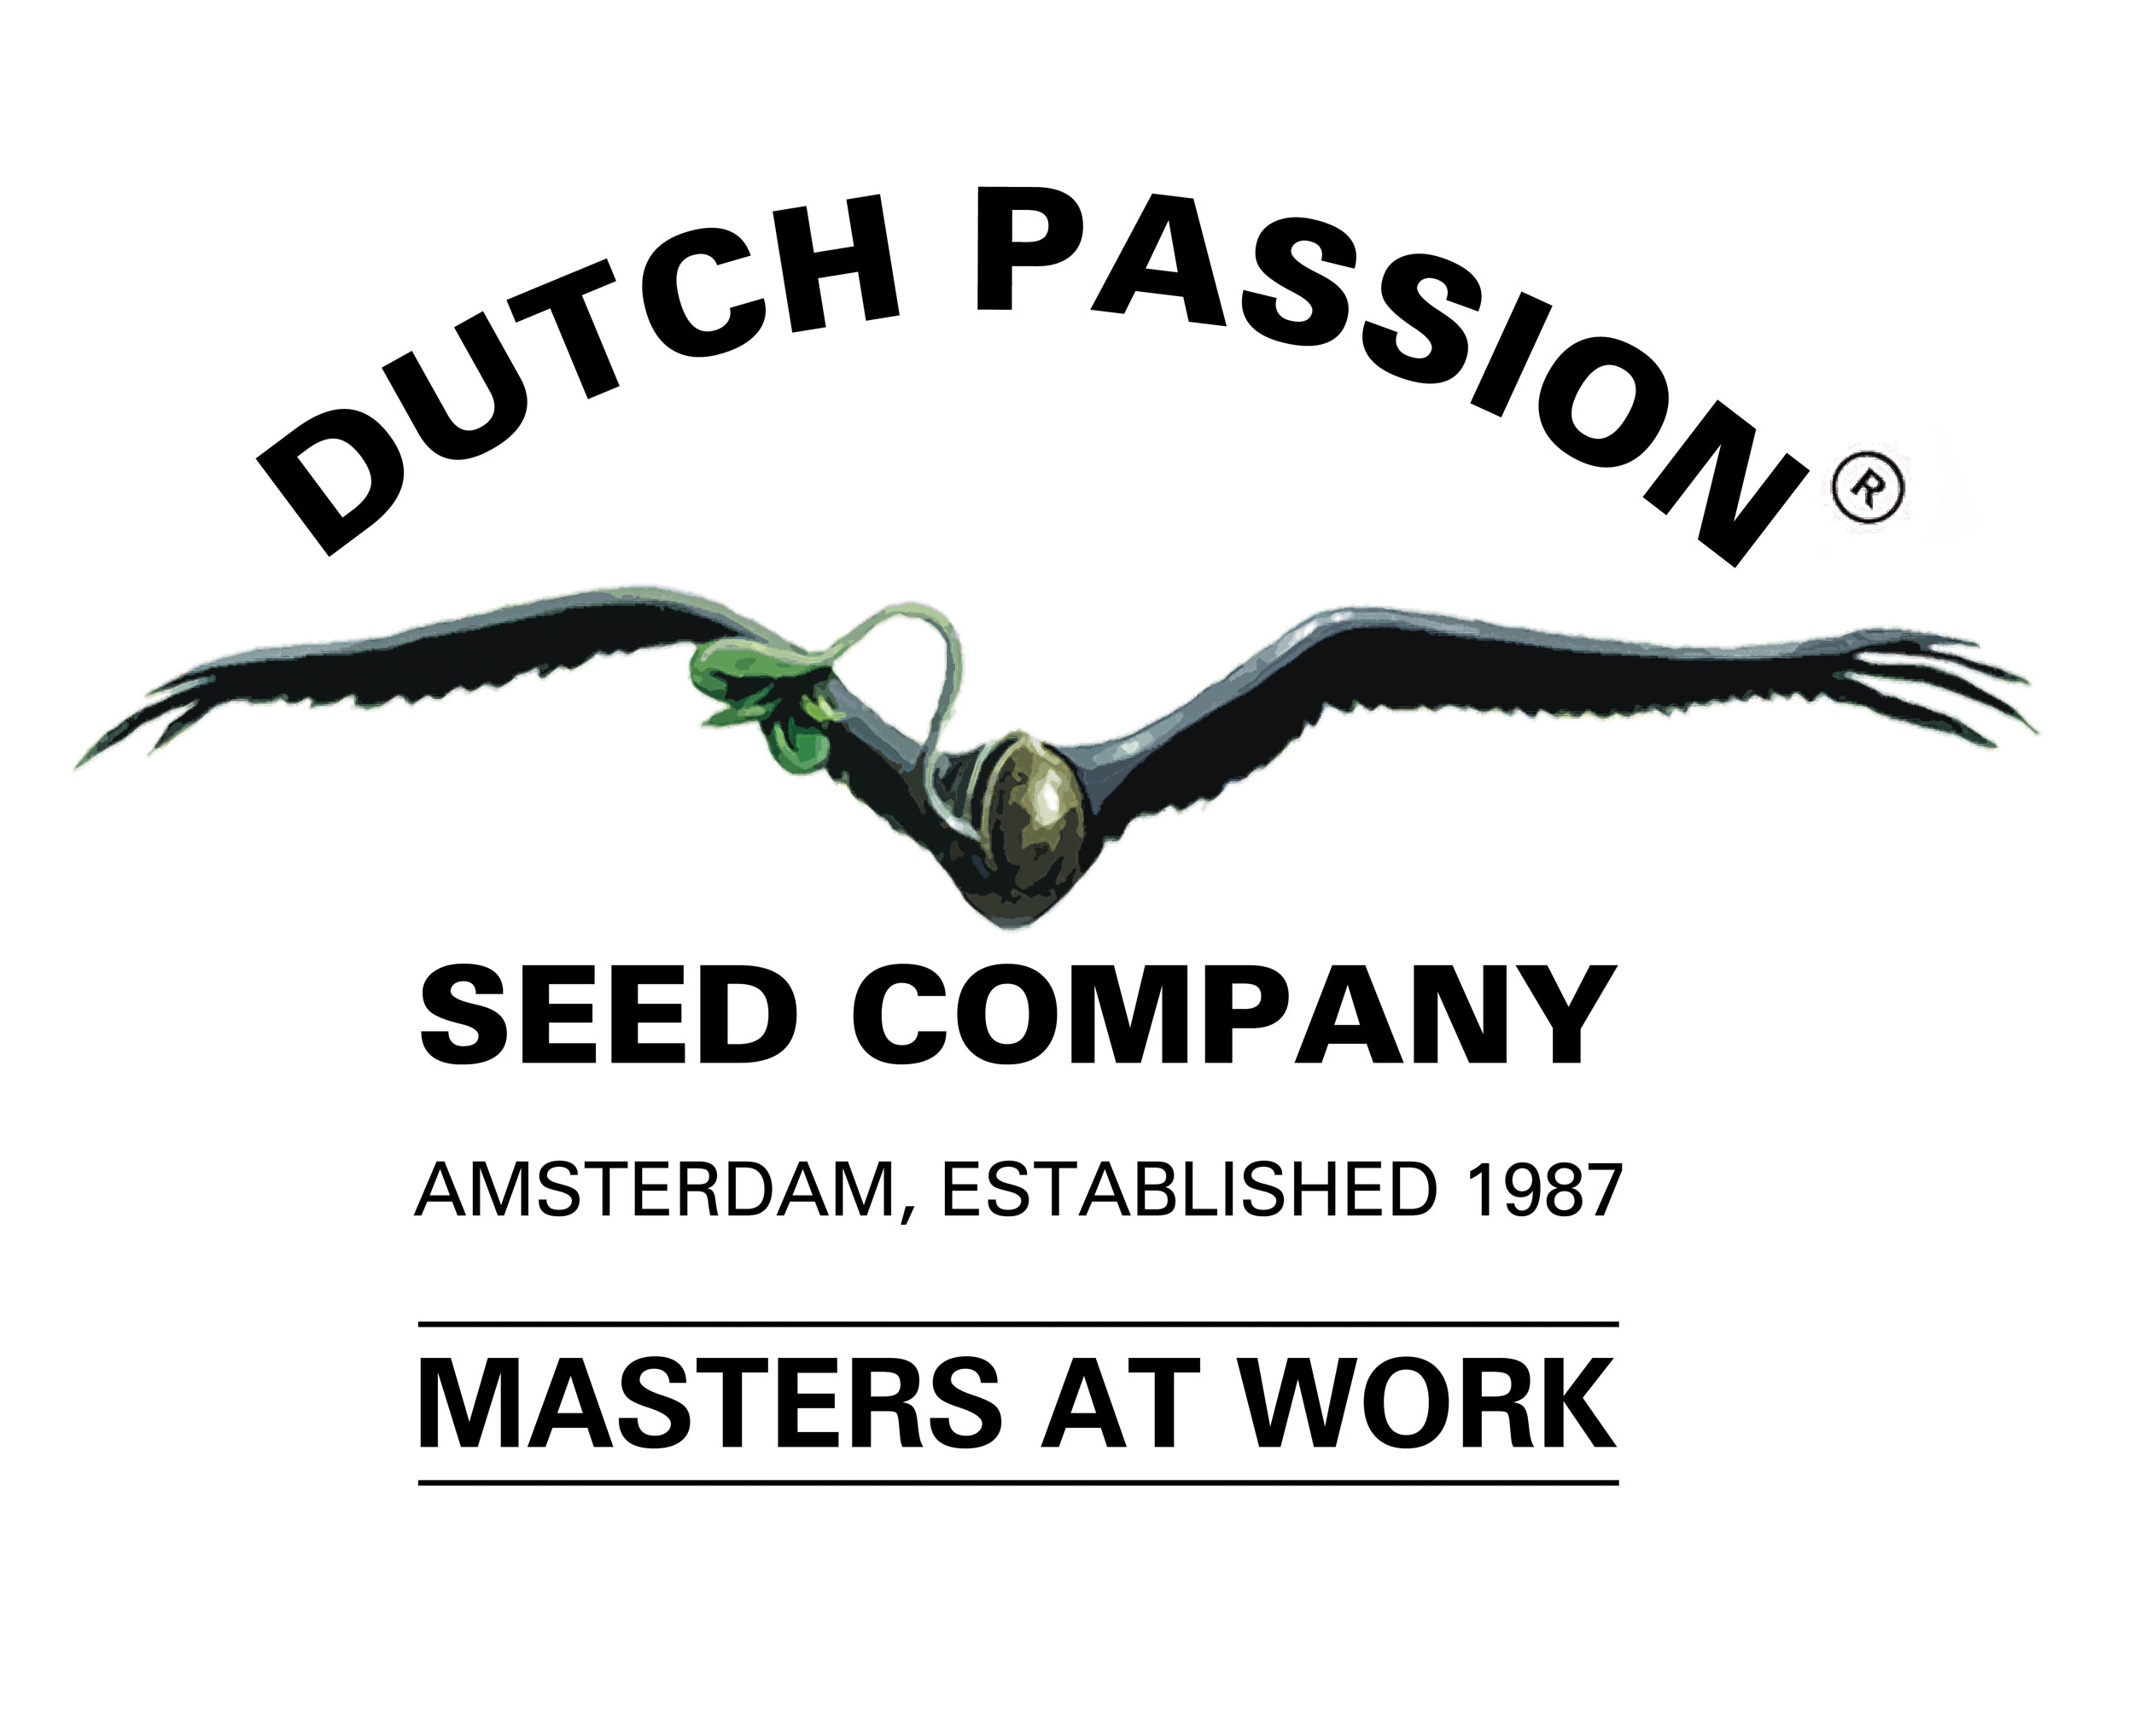 Dutch Passion Colour mix 2 HP,DP,FD 6ks Outdoor